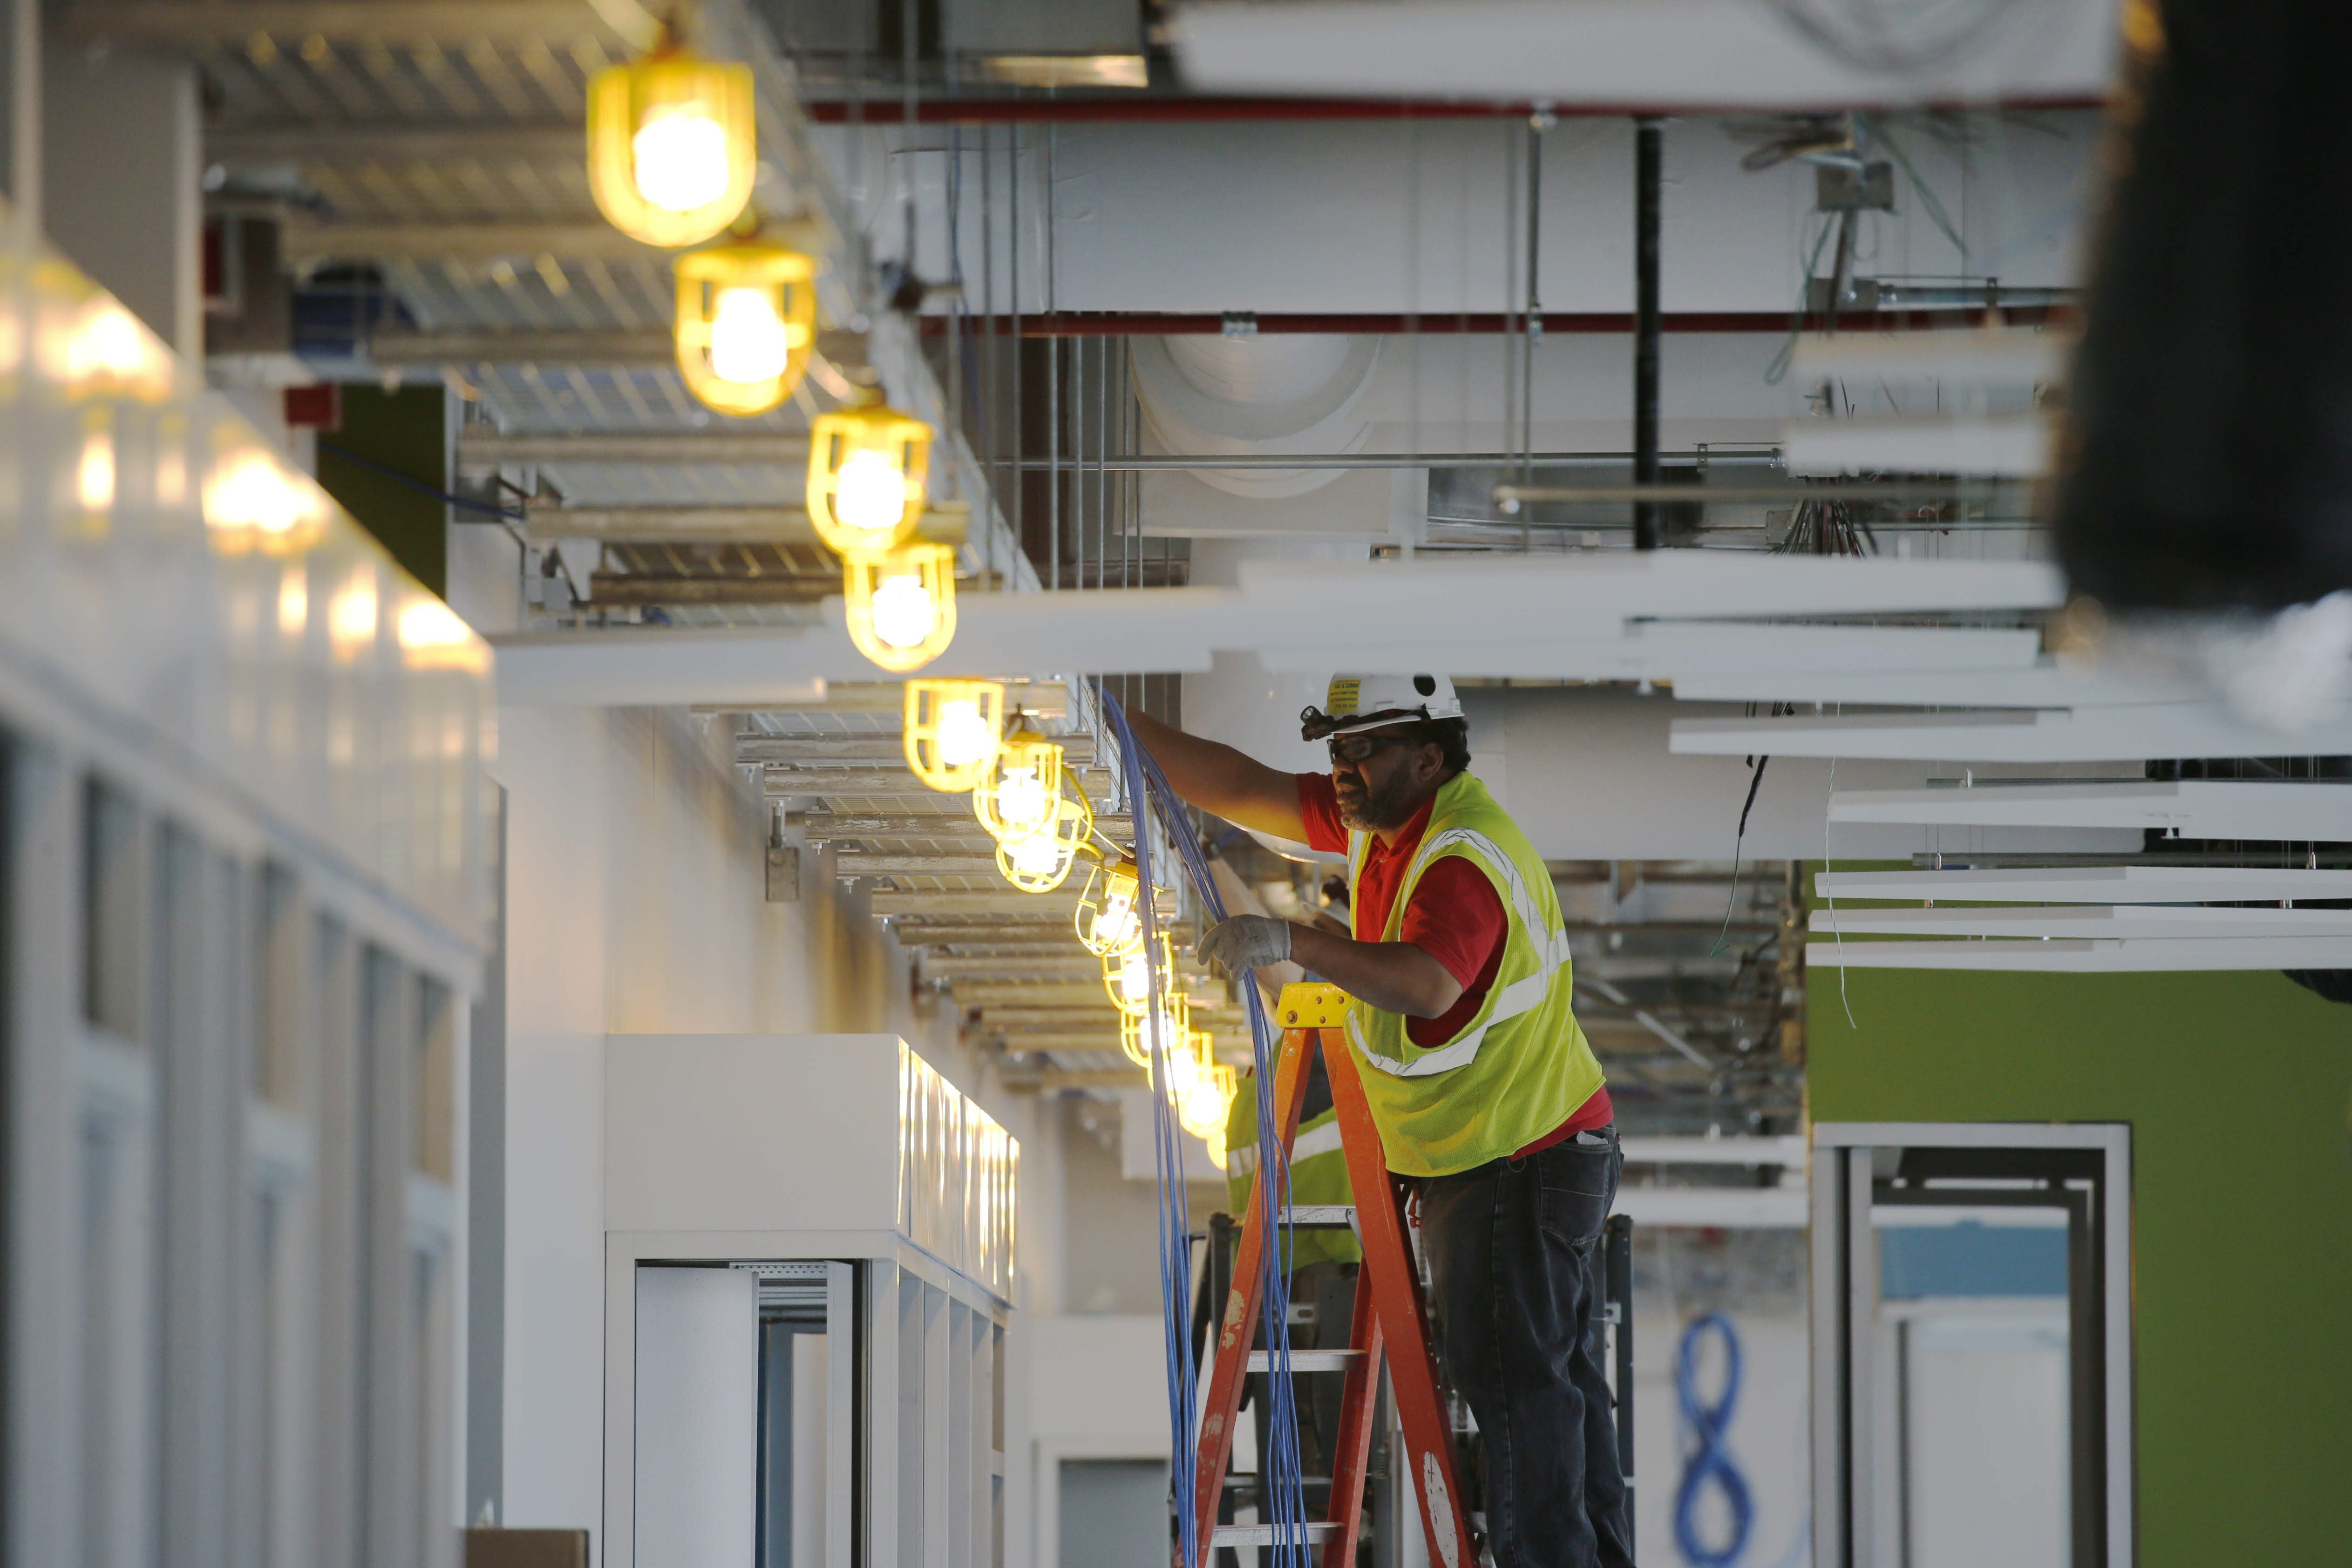 An electrician runs wire in the office area as construction continues at the massive Solar City manufacturing facility at RiverBend in a file photo from May 2016.  (Derek Gee/Buffalo News file photo)